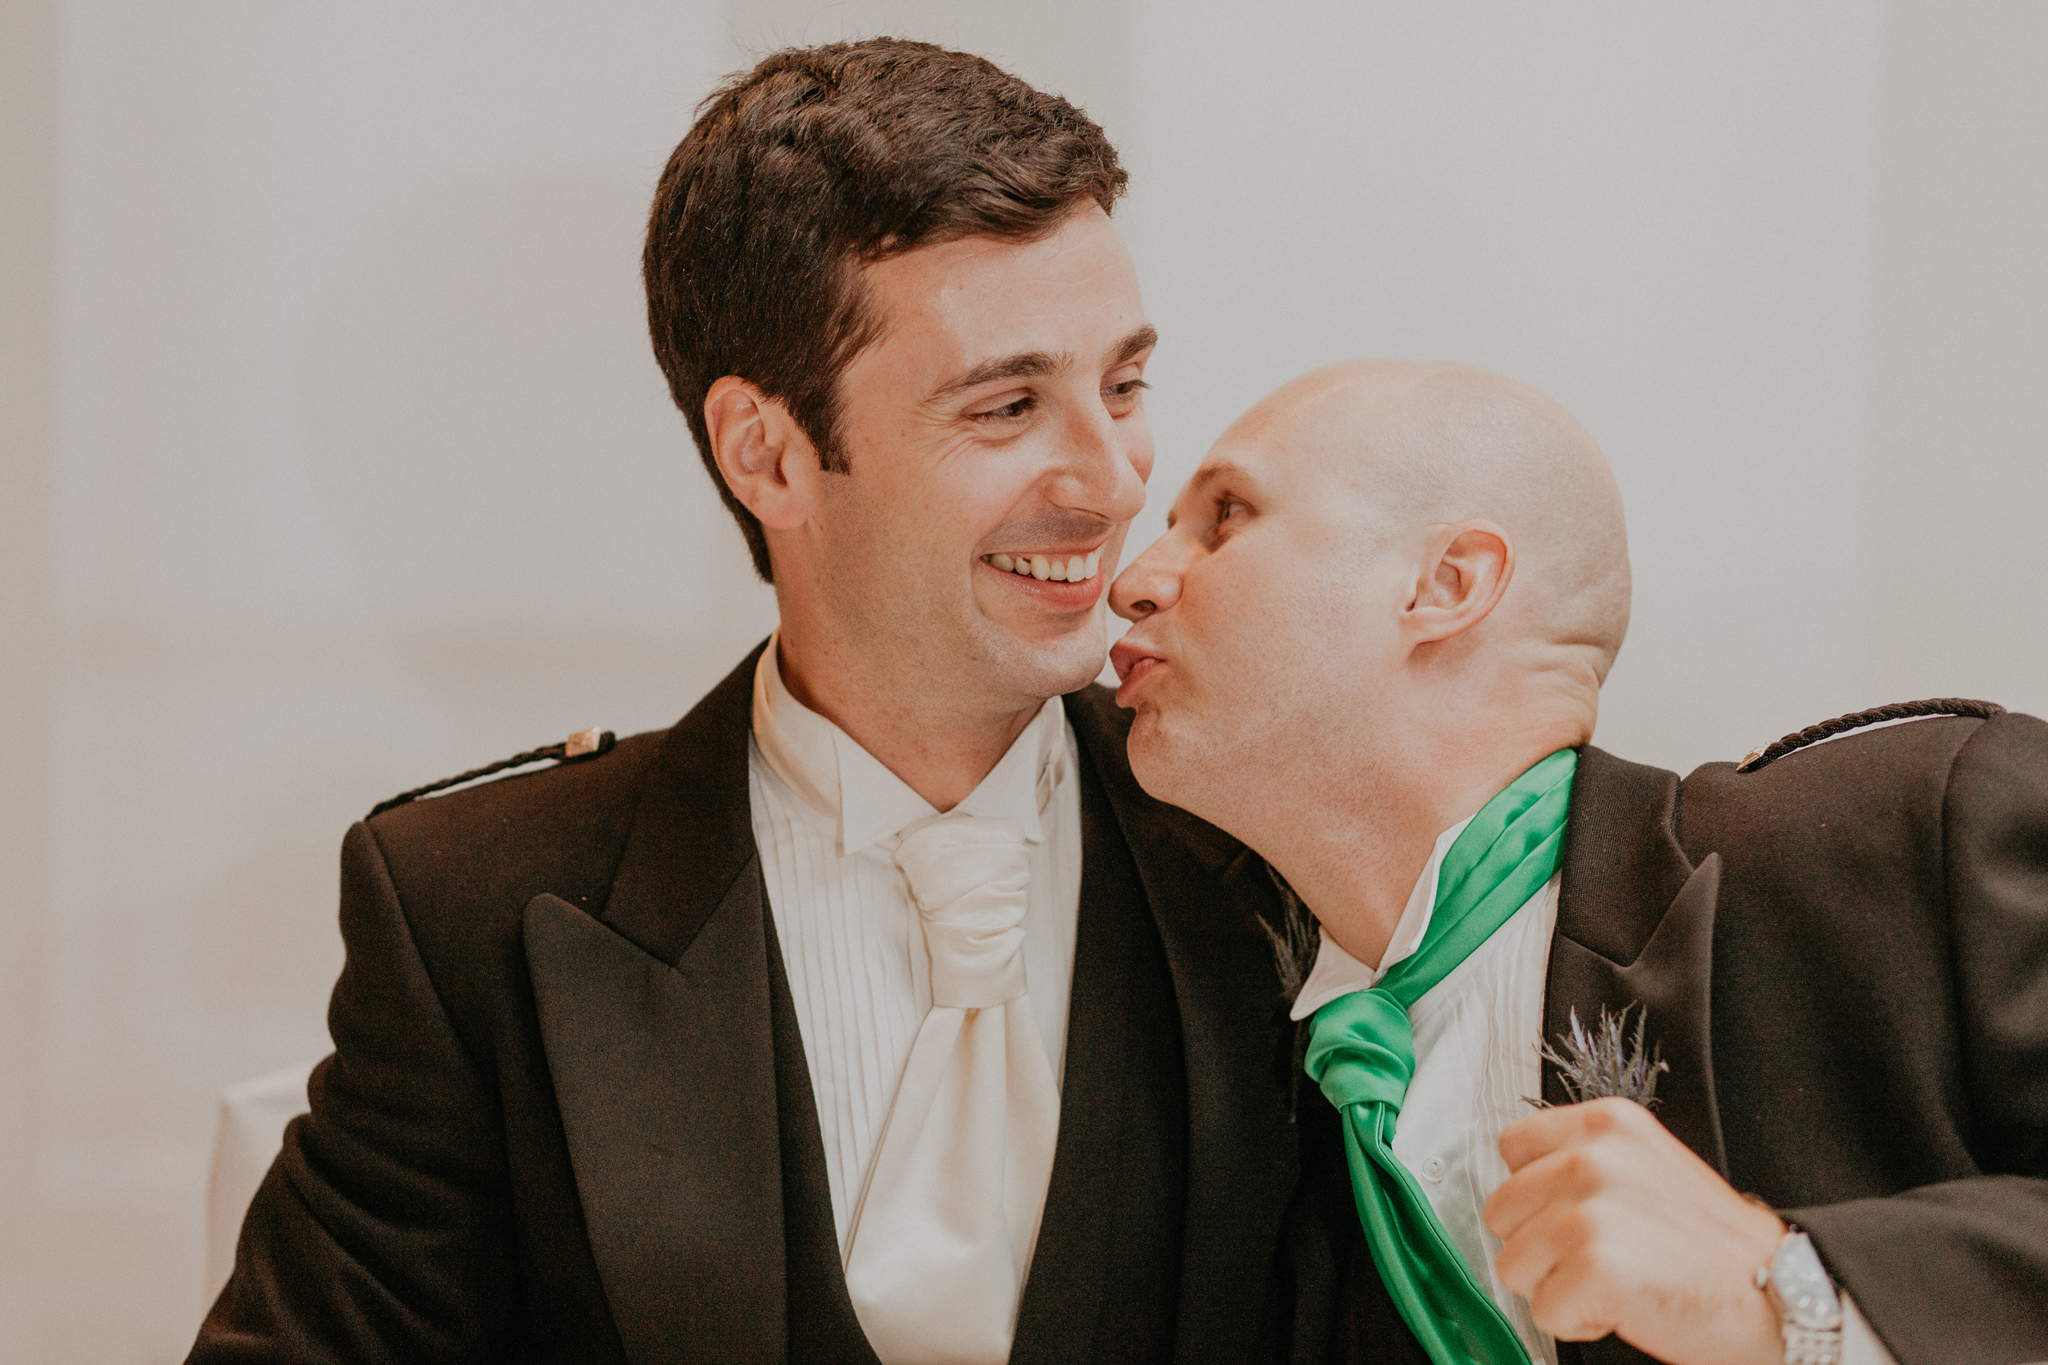 Groomsmen jokes and kisses groom during wedding reception